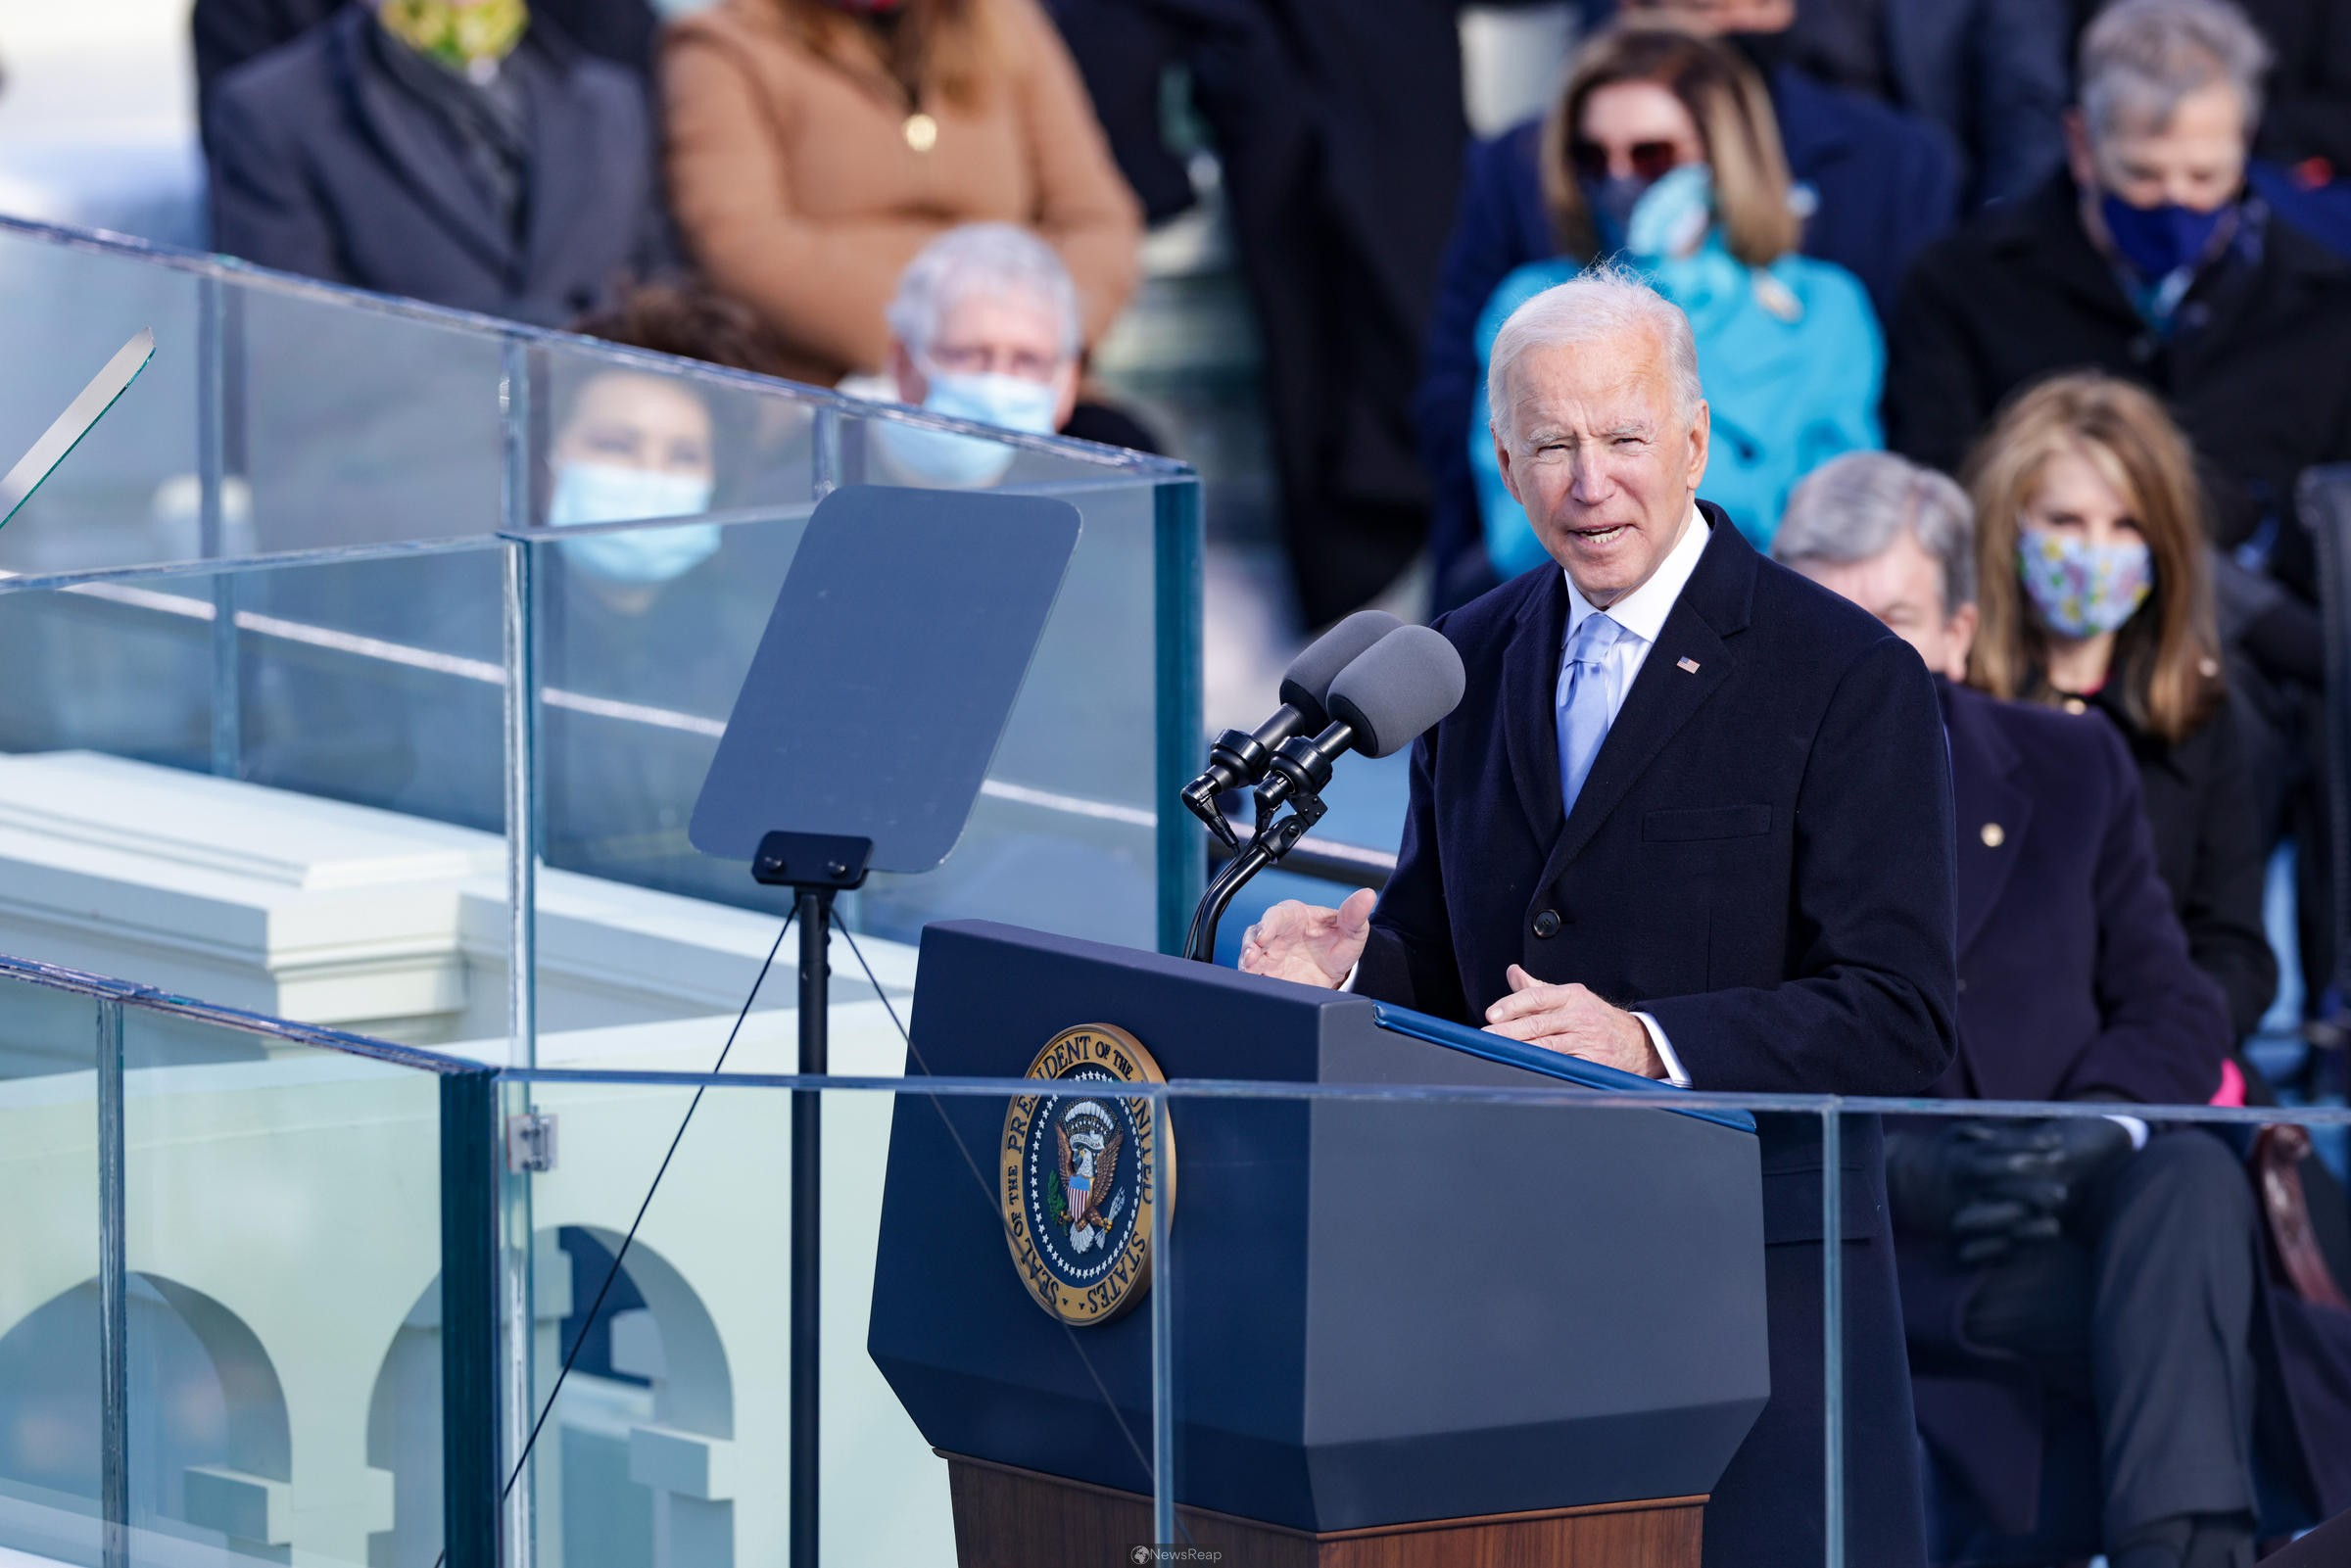 U.S. President Joe Biden's inaugural address